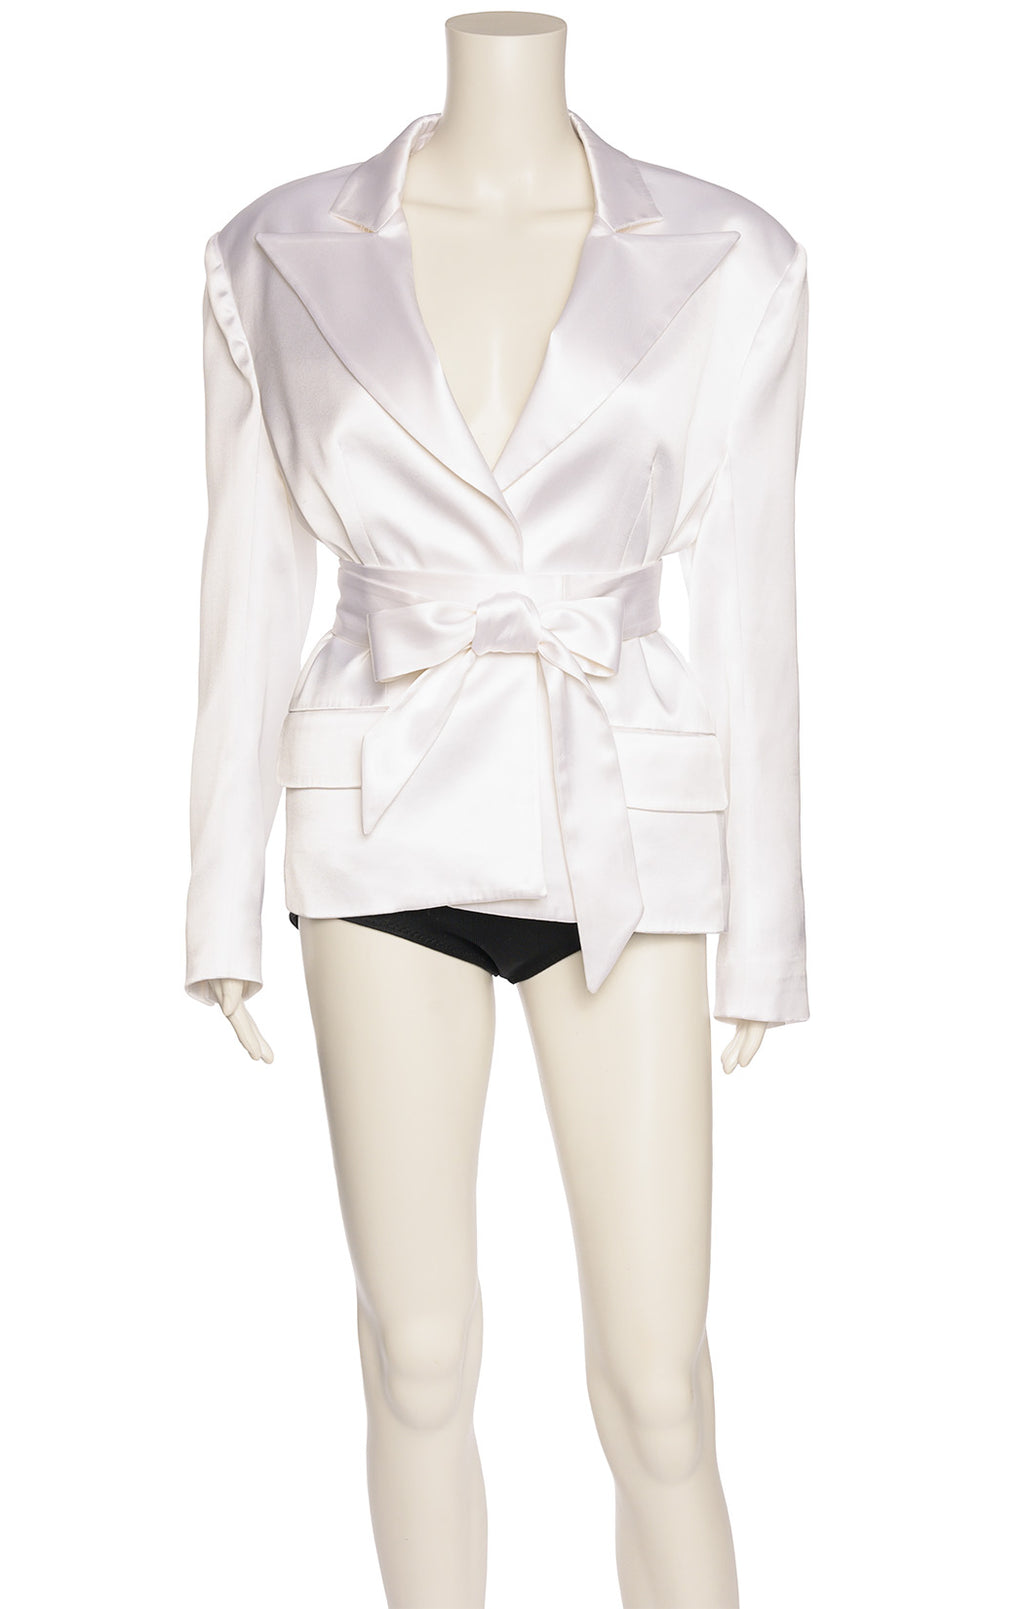 White satin Jacket